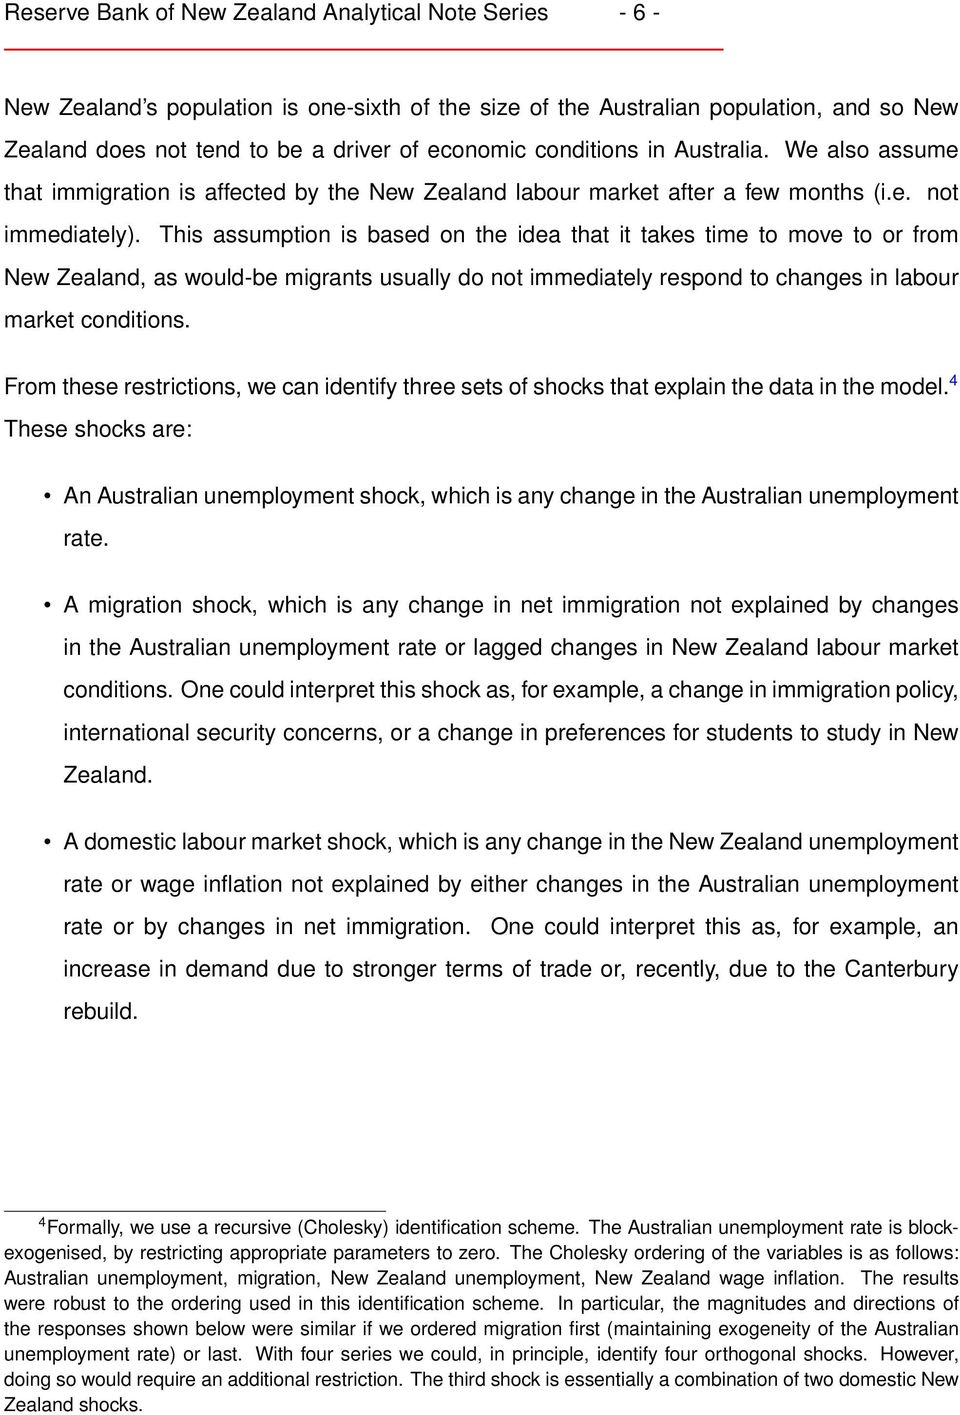 This assumption is based on the idea that it takes time to move to or from New Zealand, as would-be migrants usually do not immediately respond to changes in labour market conditions.